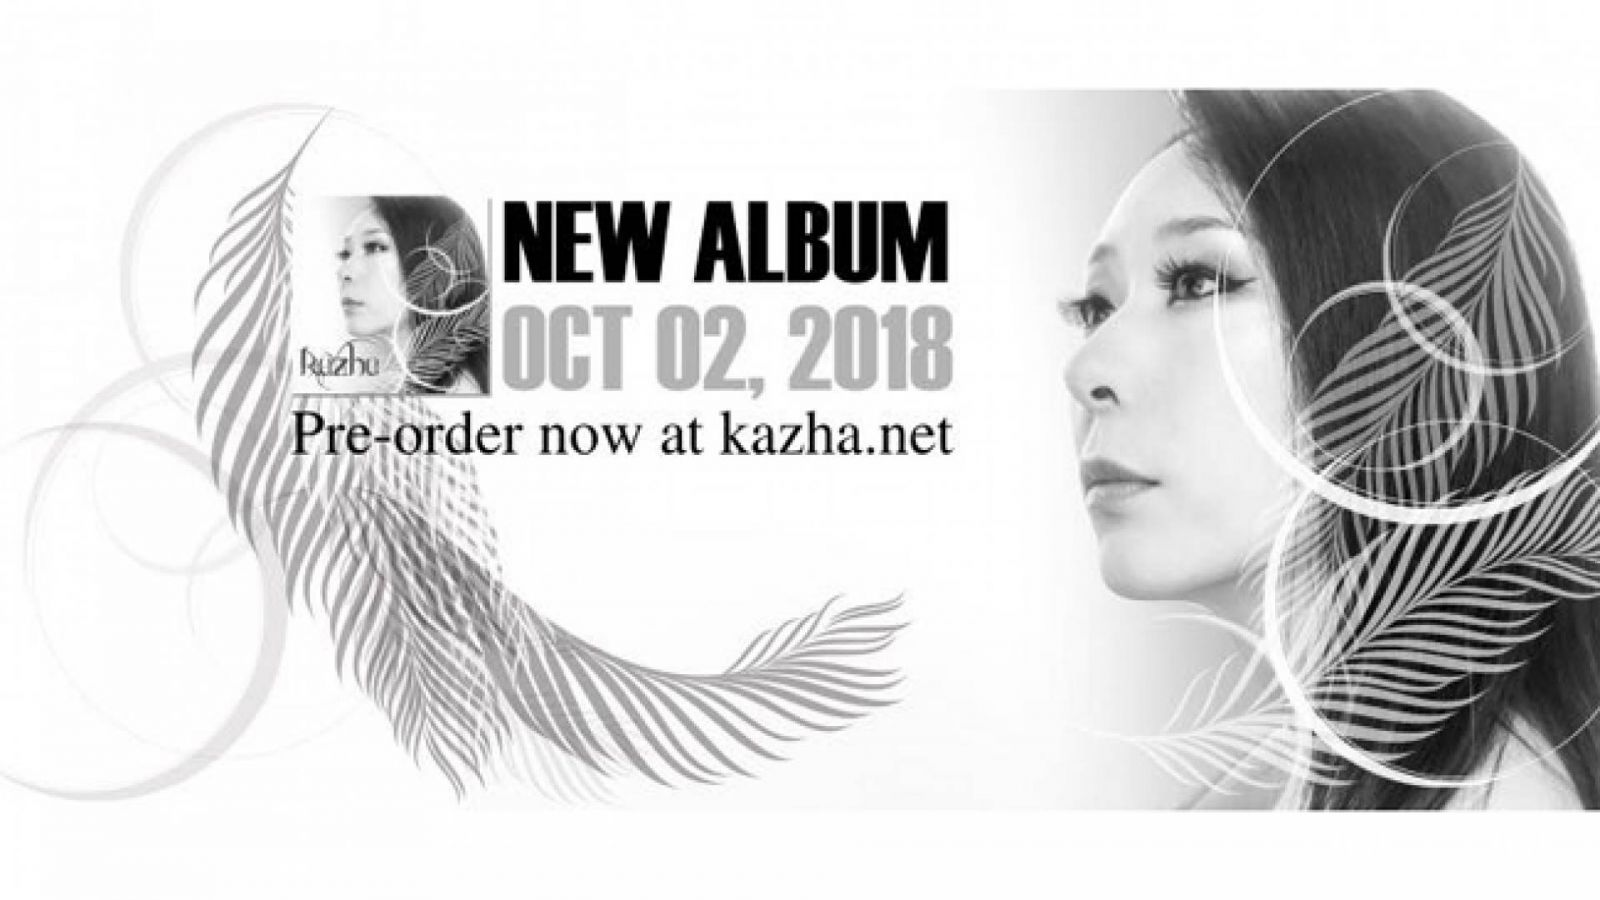 New Album from Kazha © 2018 Kazha. All rights reserved.